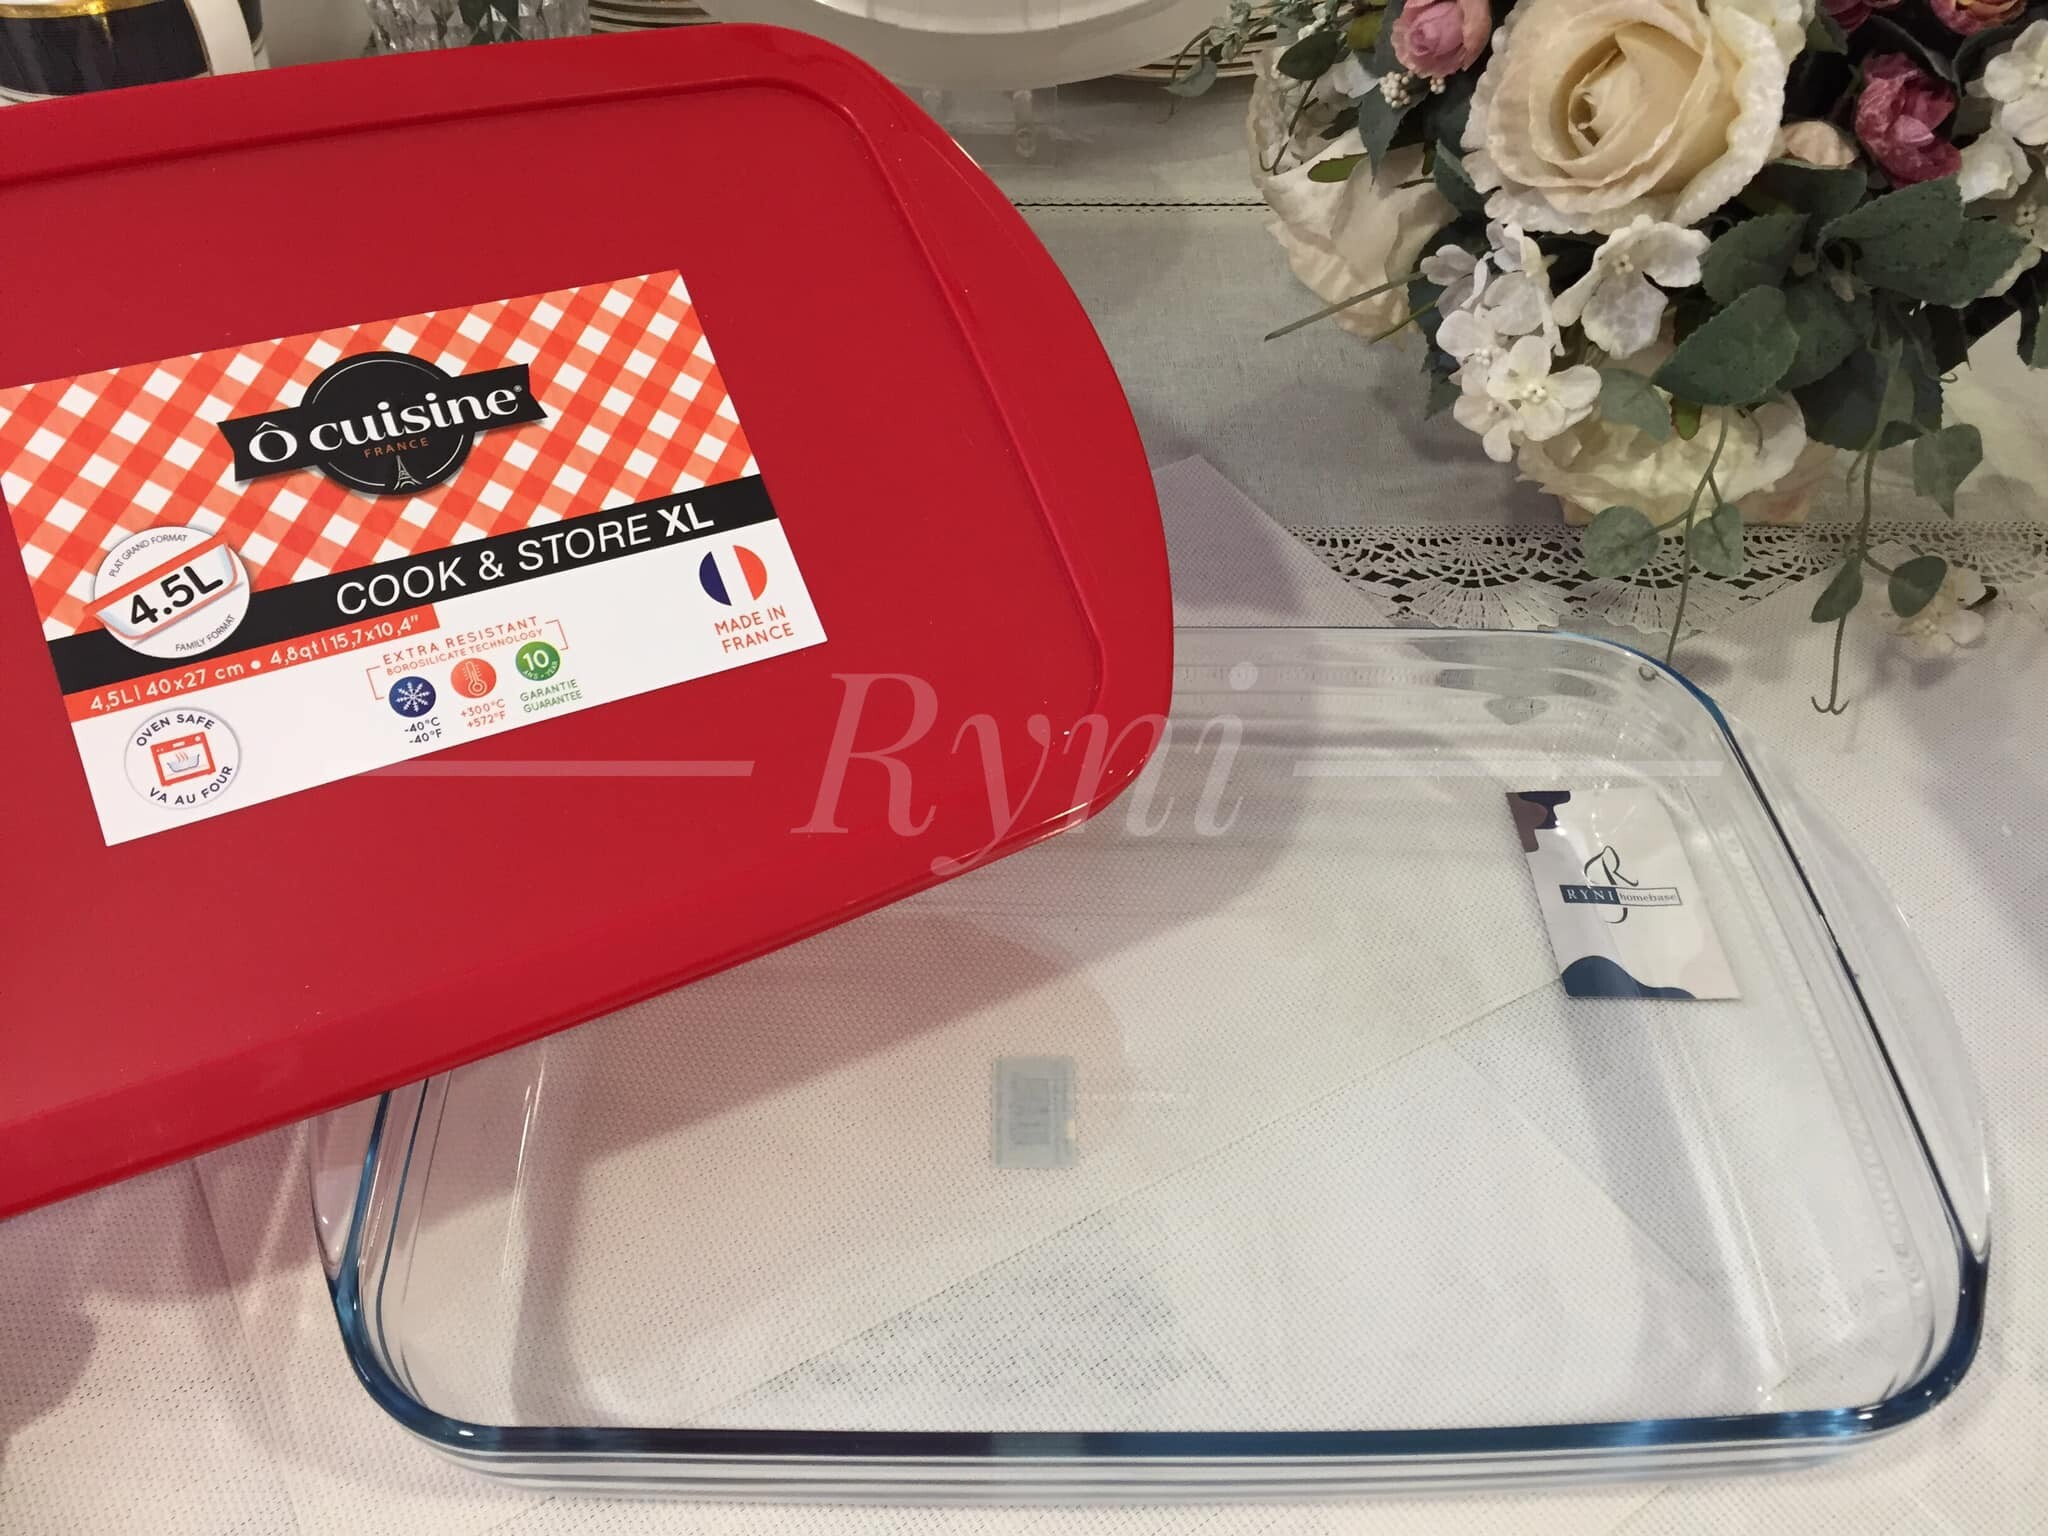 o cuisine made in france 4 5l rectangular roaster with plastic cover 40cm x 27cm